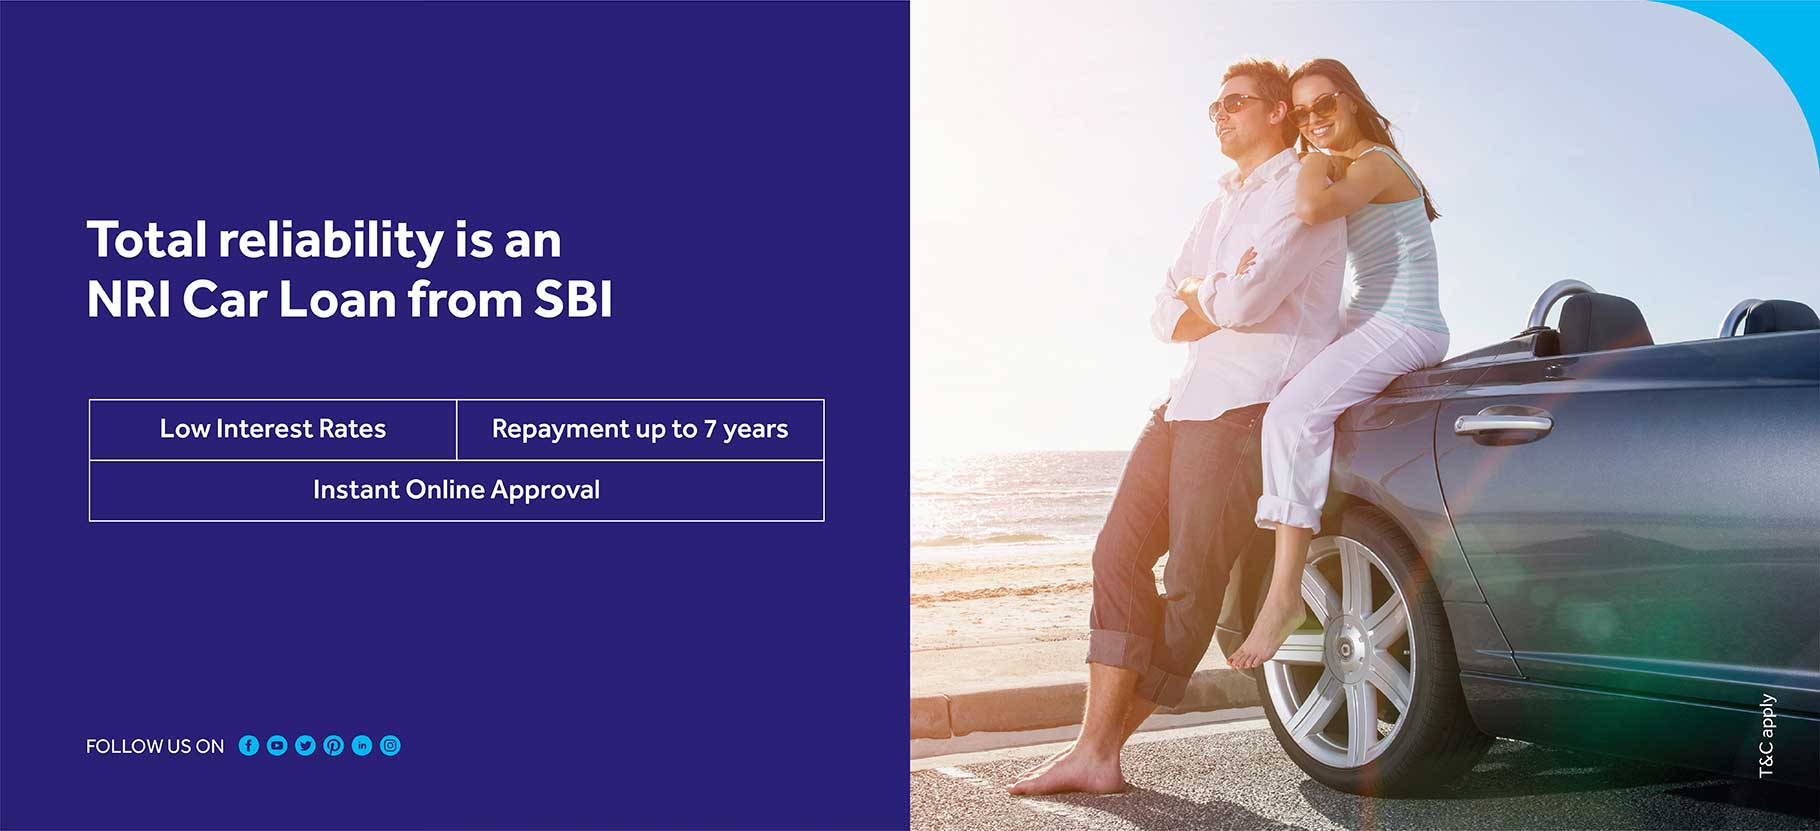 Total reliability is an NRI car loan from sbi